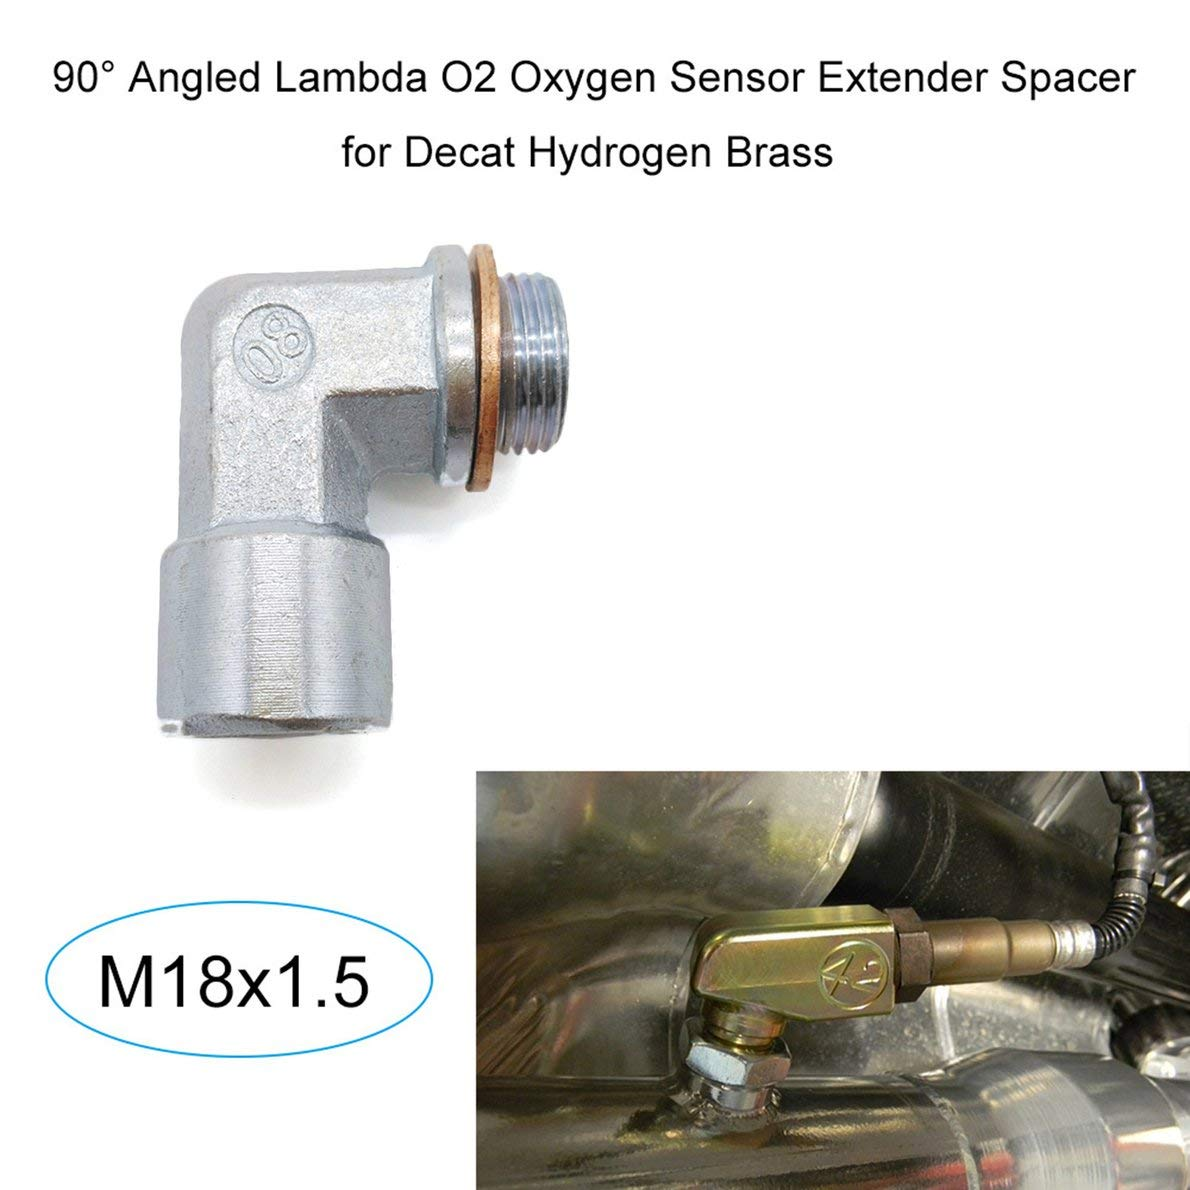 M18X1.5 O2 Oxygen Sensor Angled Extender Spacer 90 Degrees 02 Bung Extension for Decat Hydrogen Easy Installation